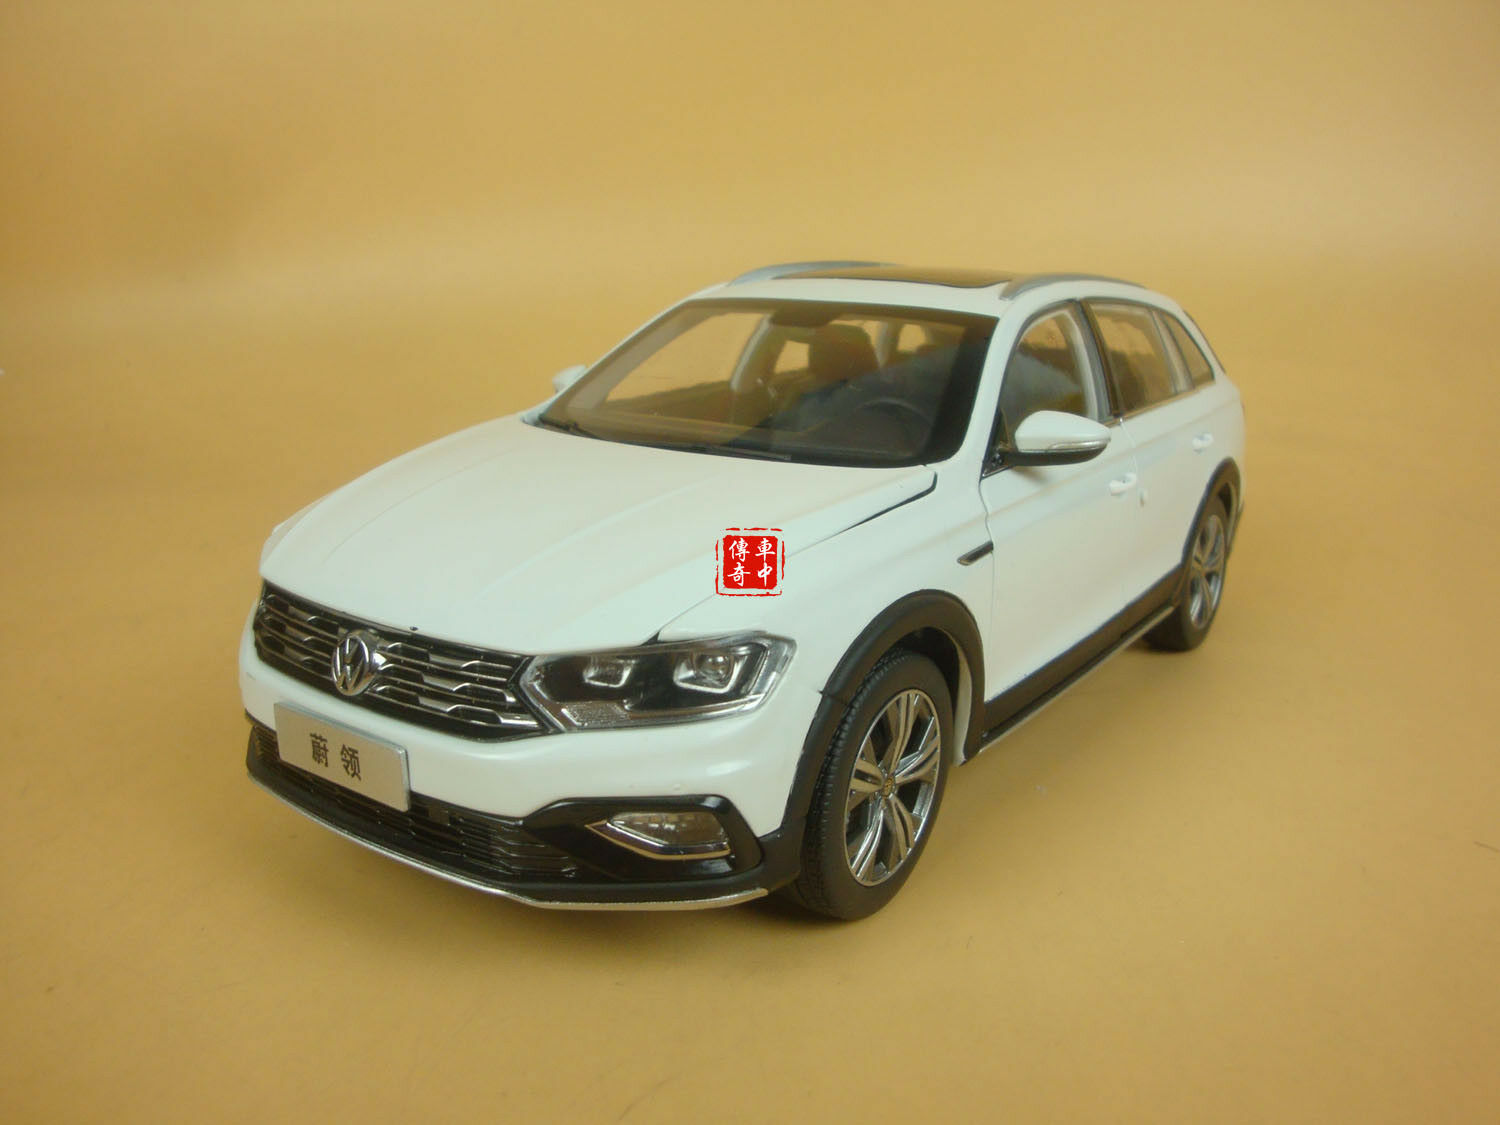 1 18 Volkswagen C-Trek C-TREK white color diecast model + GIFT